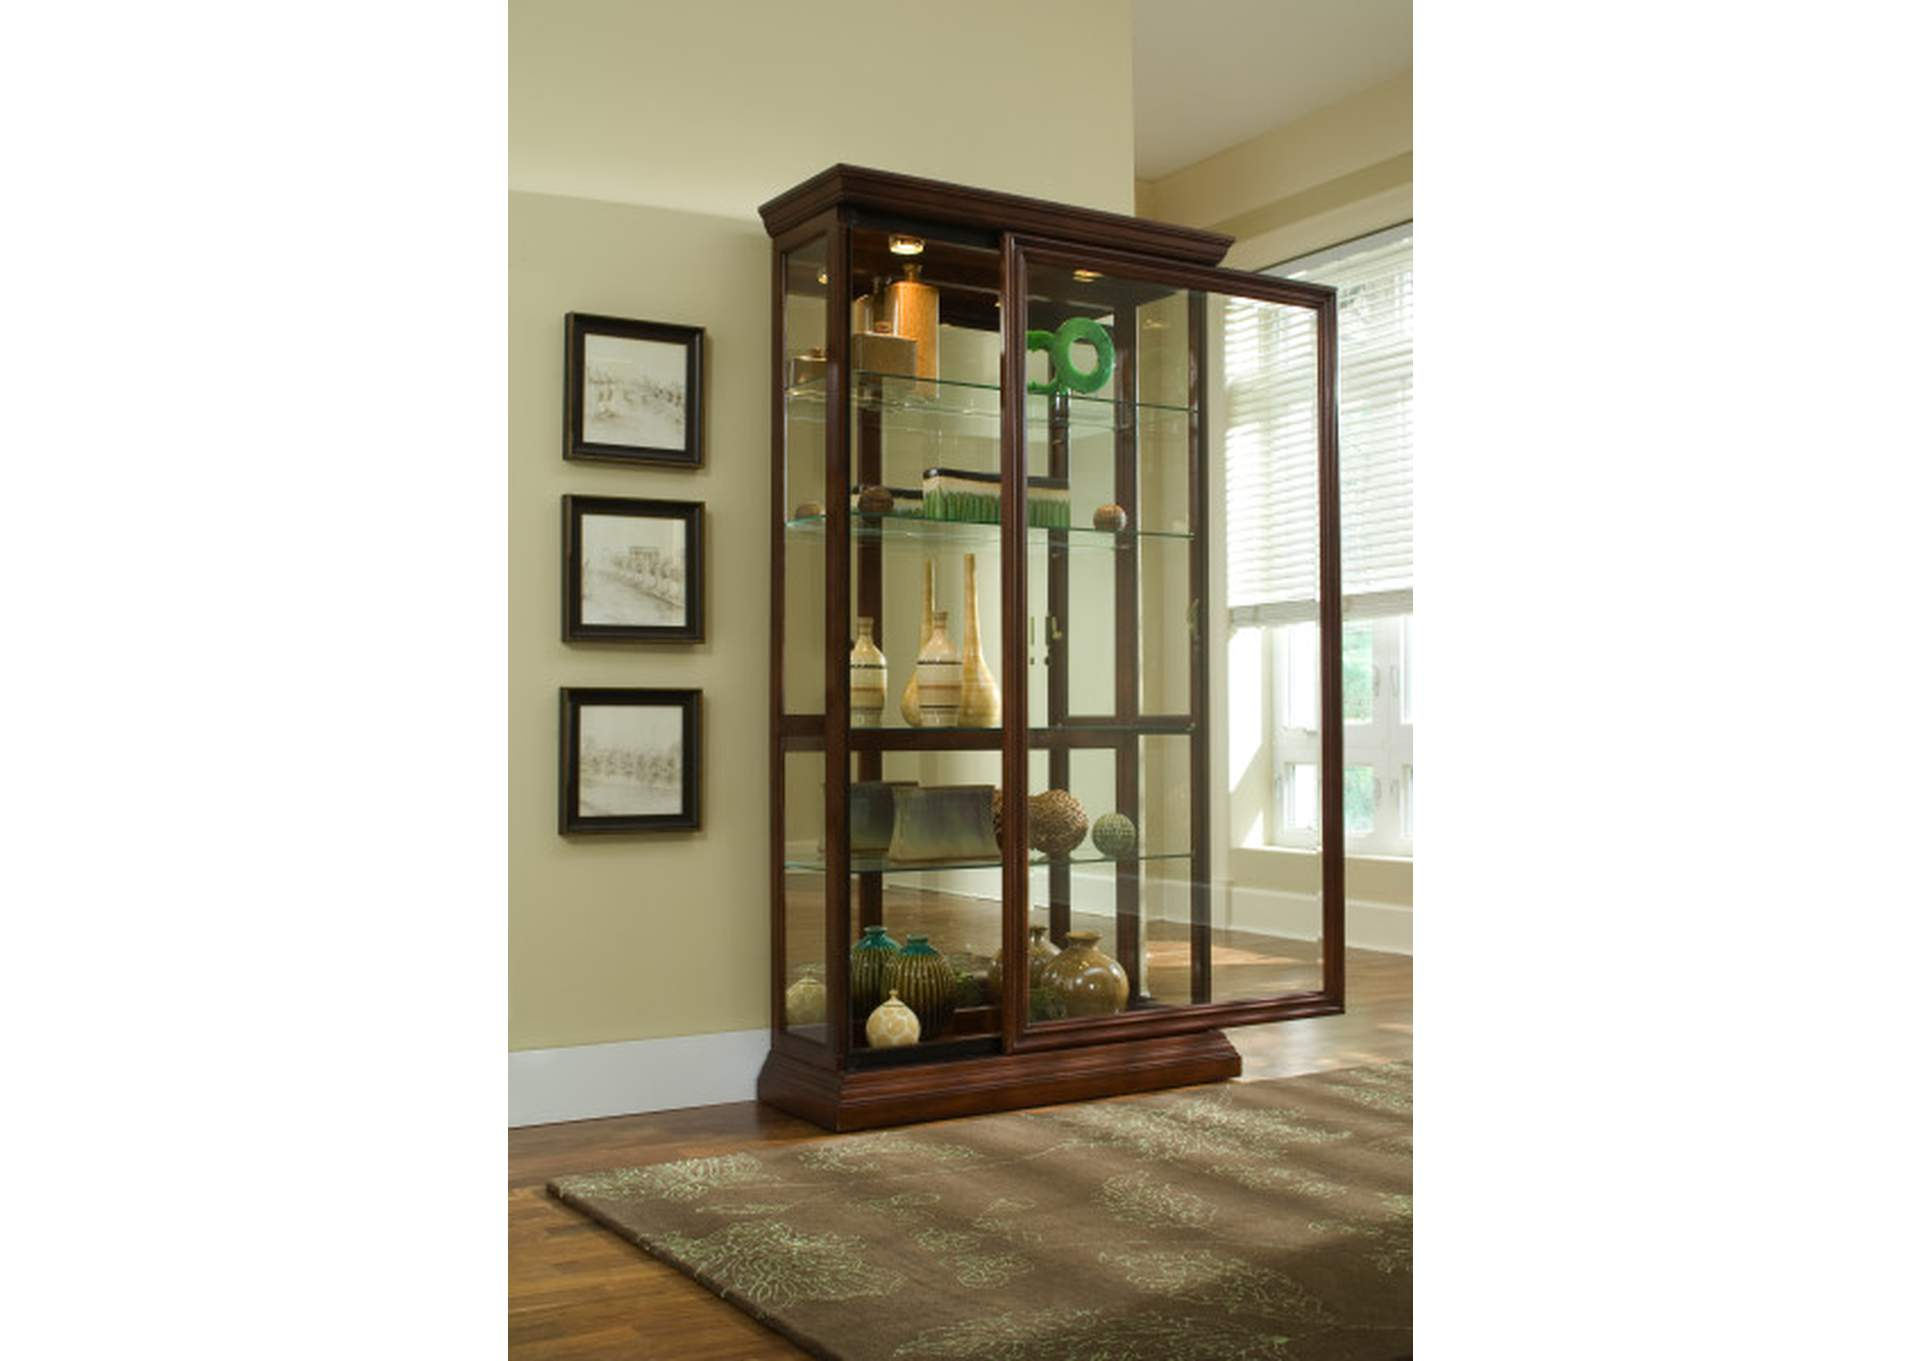 Lighted Sliding Door 4 Shelf Curio Cabinet in Cherry Brown,Pulaski Furniture